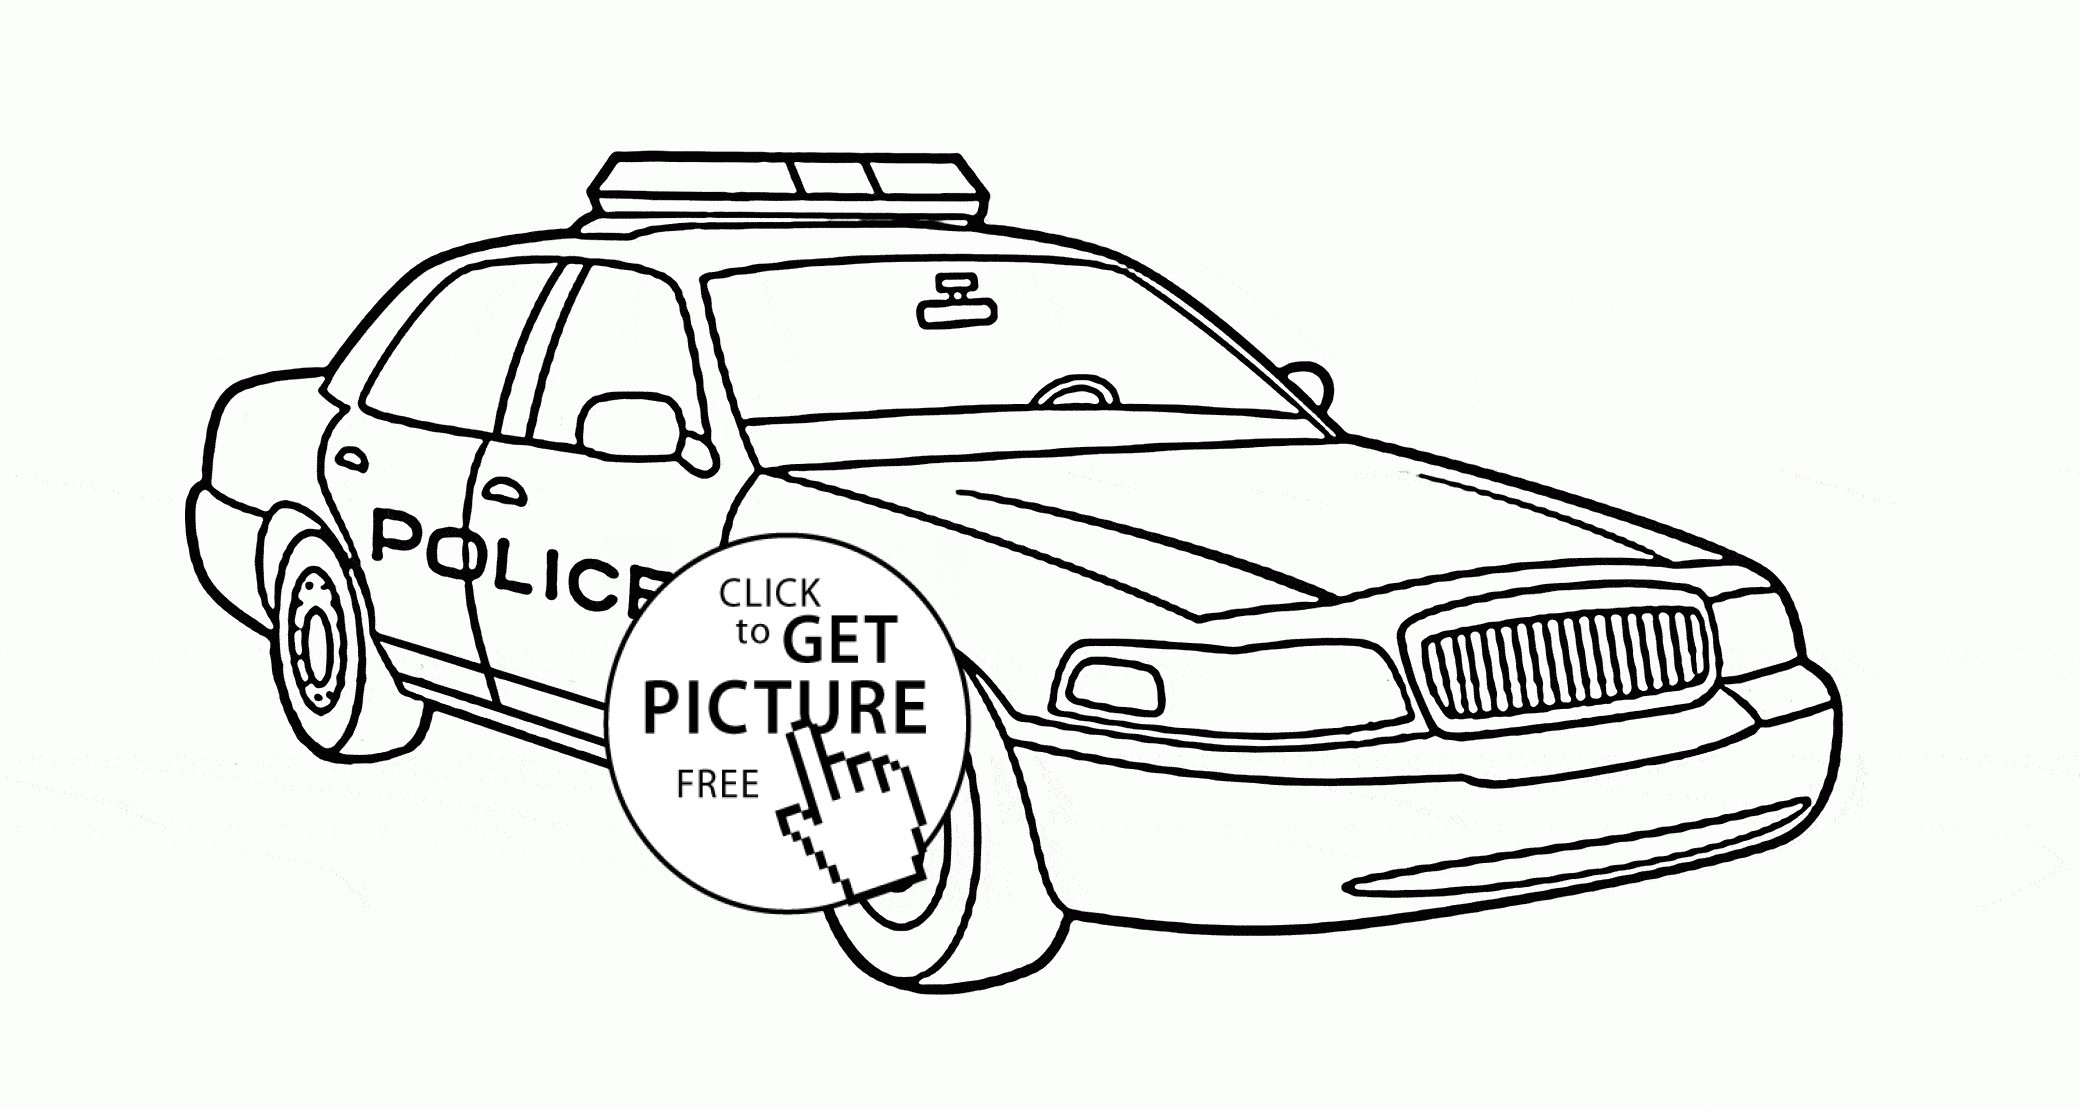 Free Car Coloring Pages Coloring Pages Free Printable Police Car Coloring Pages Birijus Com